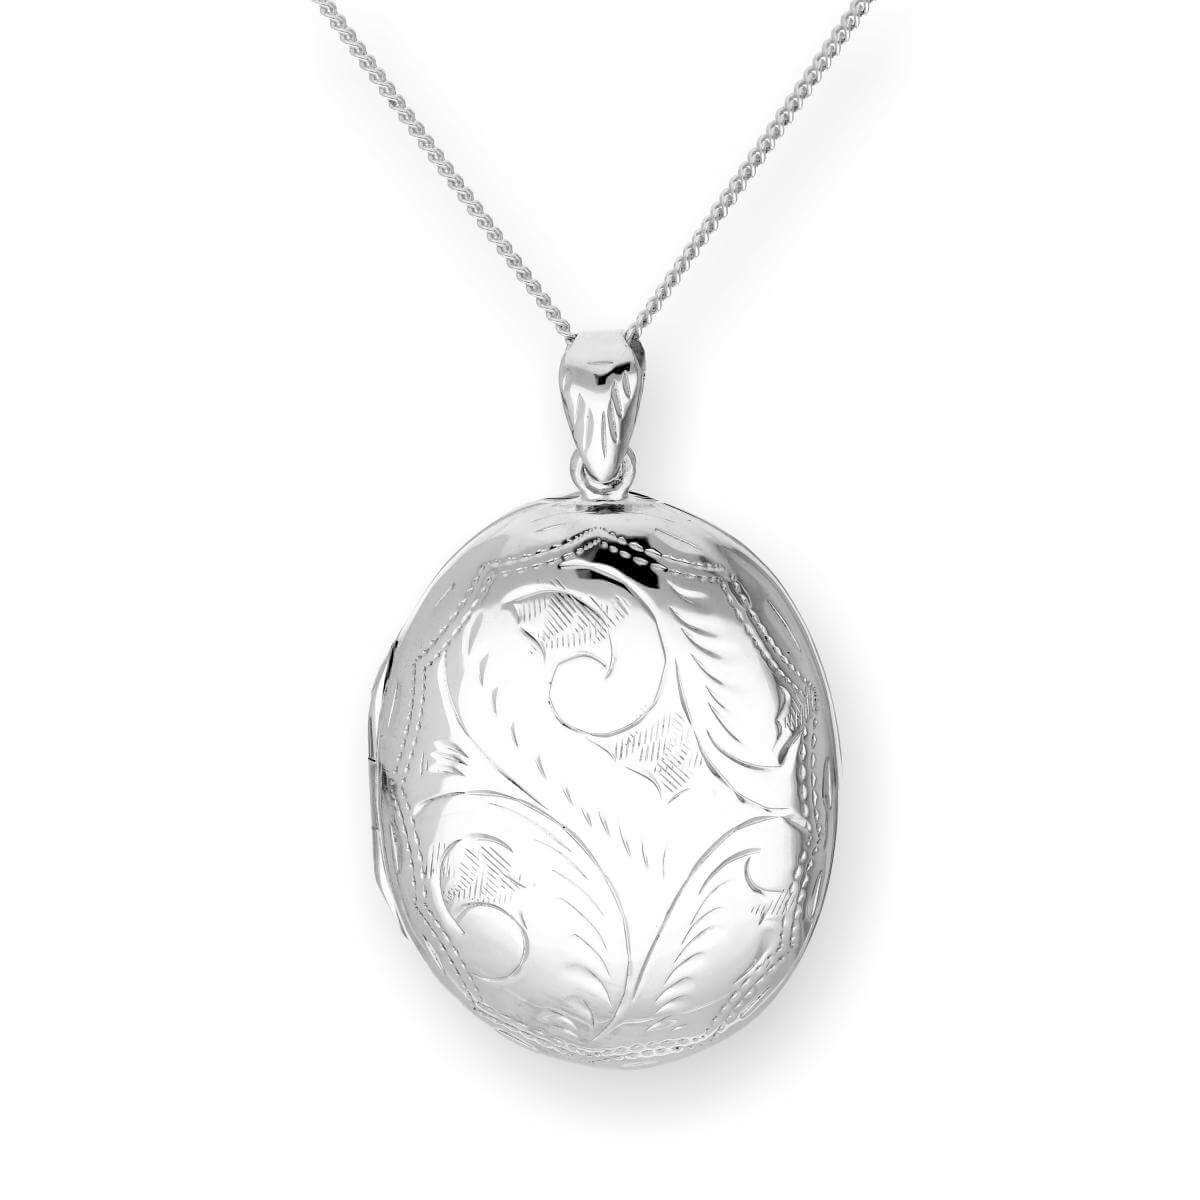 Large Sterling Silver Engraved Oval Locket on Chain 16 - 24 Inches